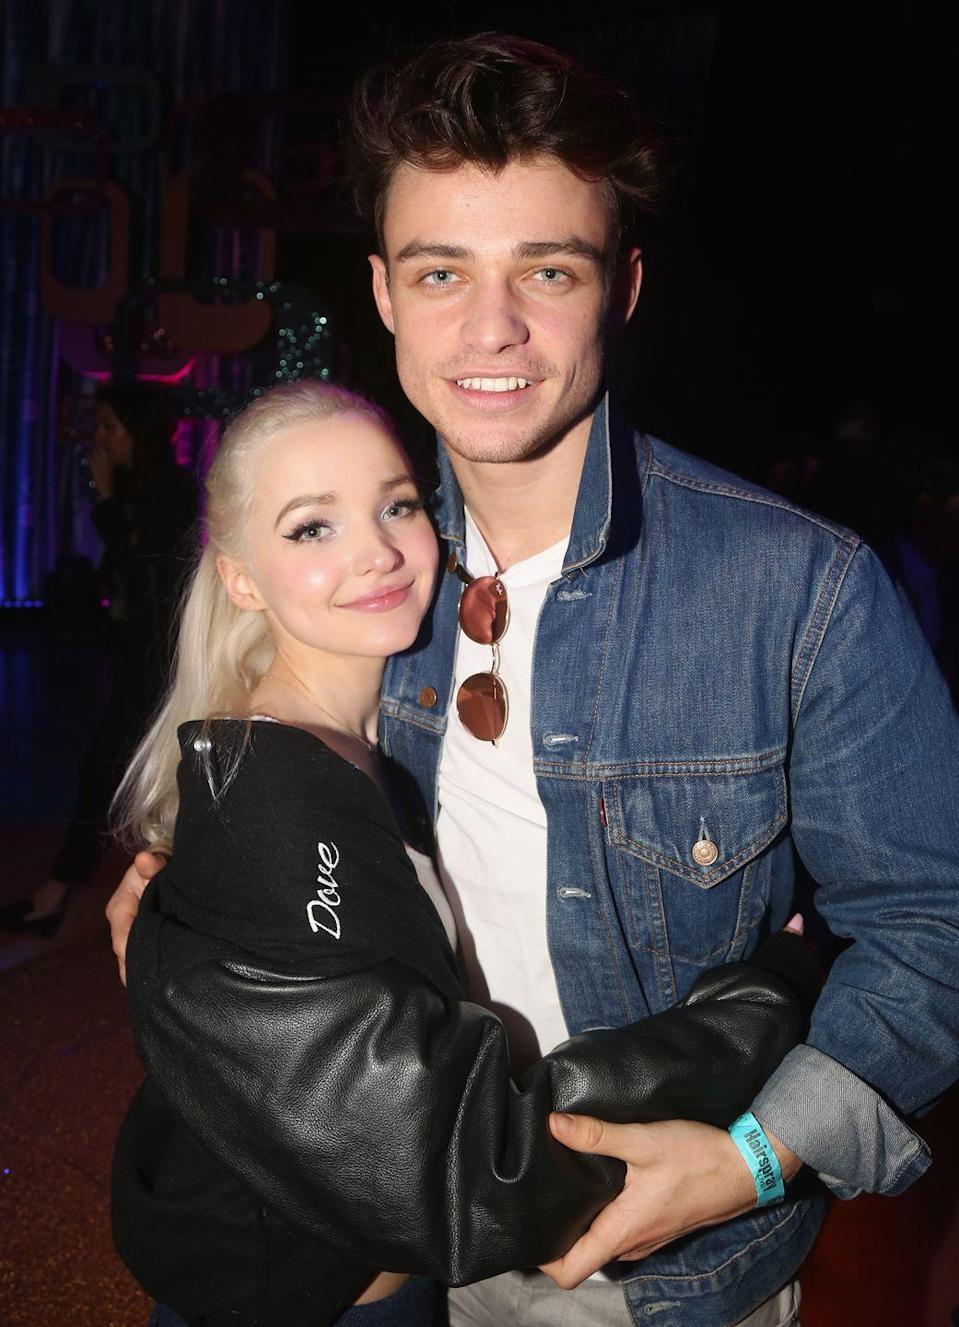 "<p>Fans did not foresee Dove and Thomas breaking up ever, but 2020 was a beast with no boundaries. After fans began speculating that <a href=""https://www.cosmopolitan.com/entertainment/celebs/a34950384/dove-cameron-thomas-doherty-split-almost-four-years-together/#:~:text=Dove%20Cameron%20and%20Thomas%20Doherty%20have%20called%20it,almost%20four%20years%20of%20dating.&text=We%20know%20there%20have%20been,I%20decided%20to%20part%20ways."" rel=""nofollow noopener"" target=""_blank"" data-ylk=""slk:they ended their nearly four-year relationship"" class=""link rapid-noclick-resp"">they ended their nearly four-year relationship</a>, Dove posted a statement on her and Thomas's behalf to her Instagram stories and said, ""In October, Thomas and I decided to part ways. The decision was incredibly difficult, but we still have love for each other, and will remain friends. Thank you for allowing us our privacy in this time."" </p>"